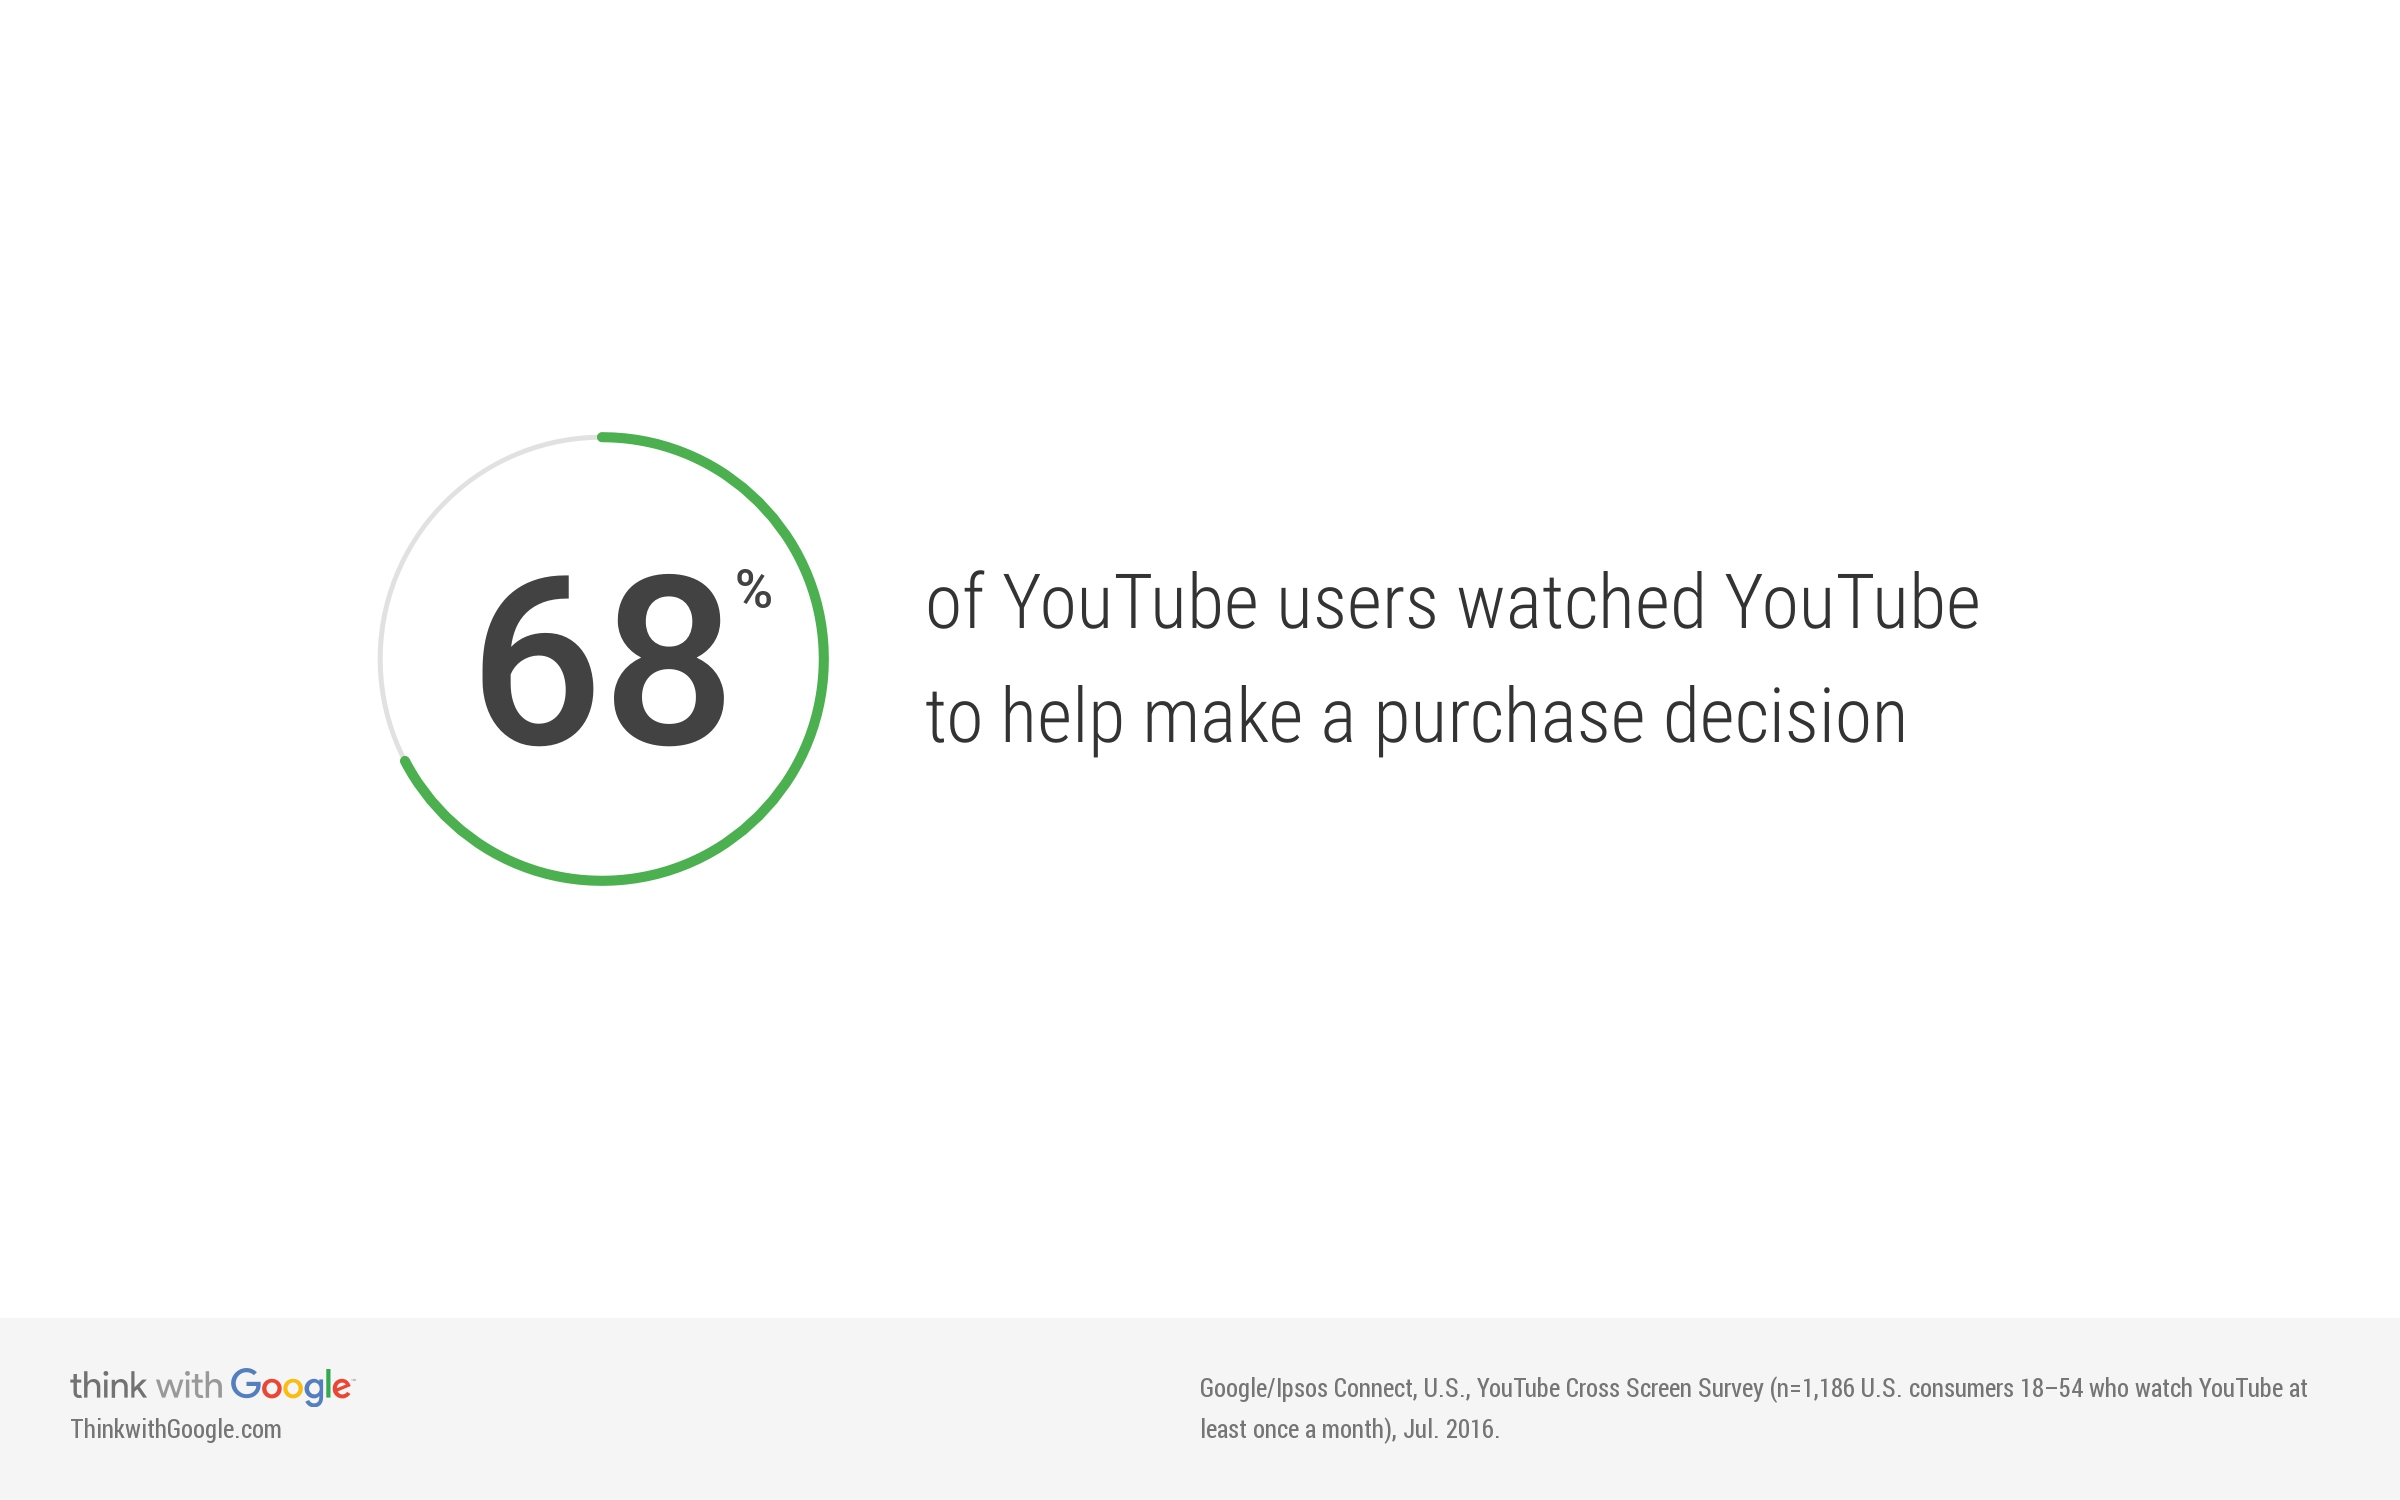 youtube-users-purchase-decision.jpg